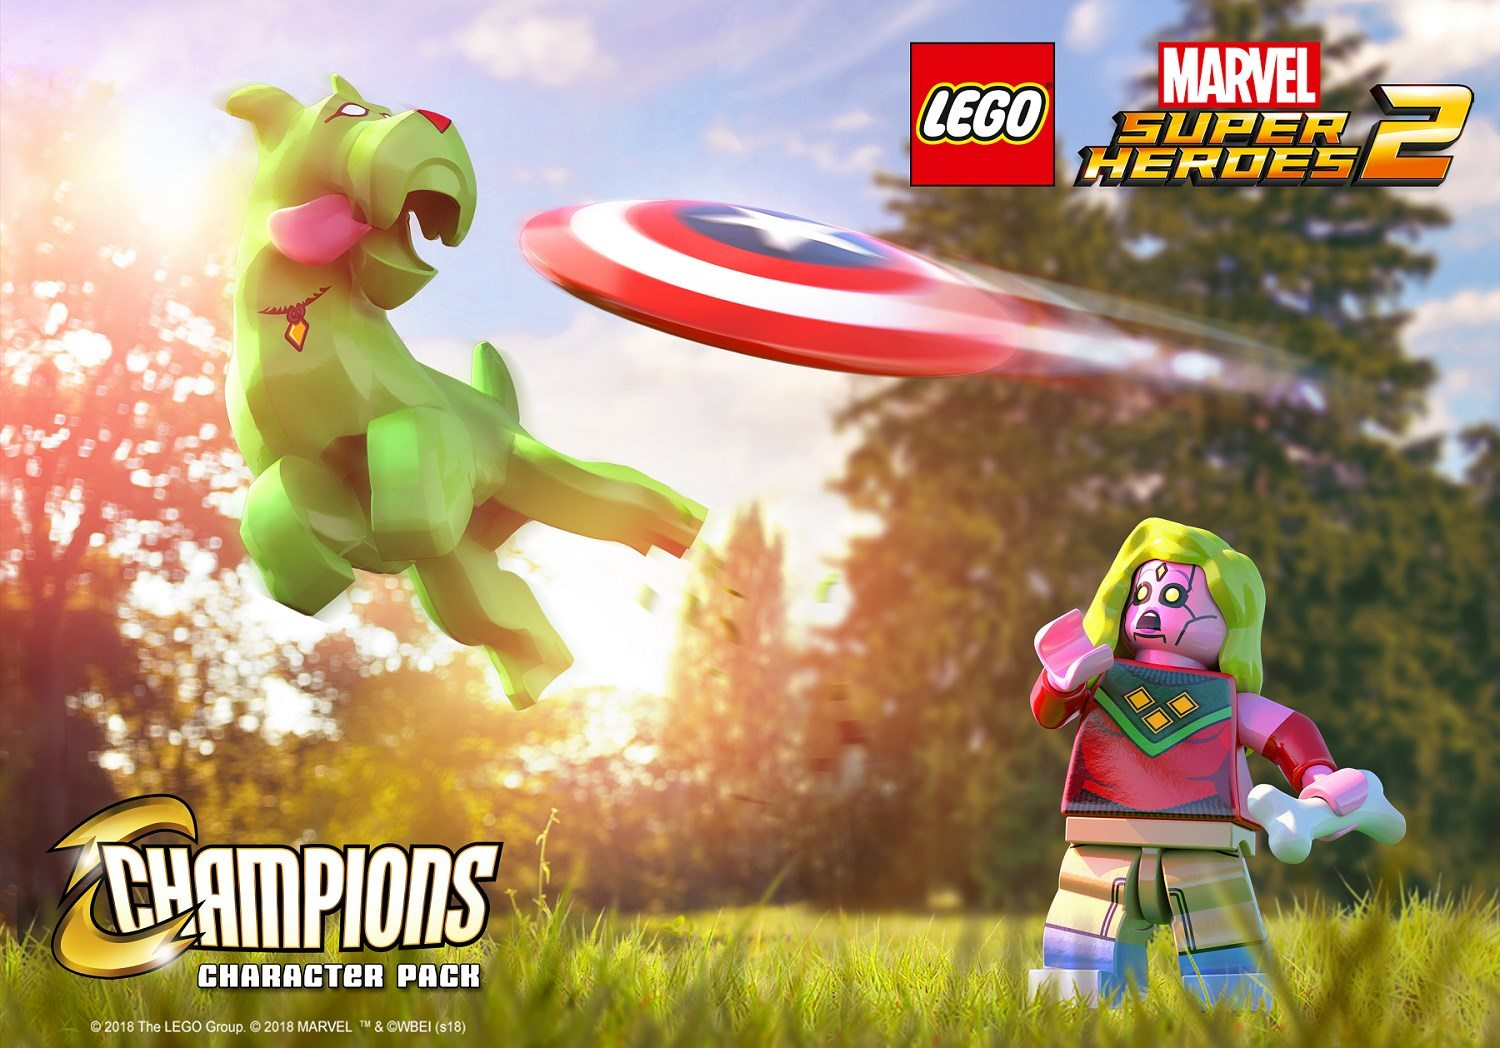 Champions character pack revealed for LEGO Marvel Super ...